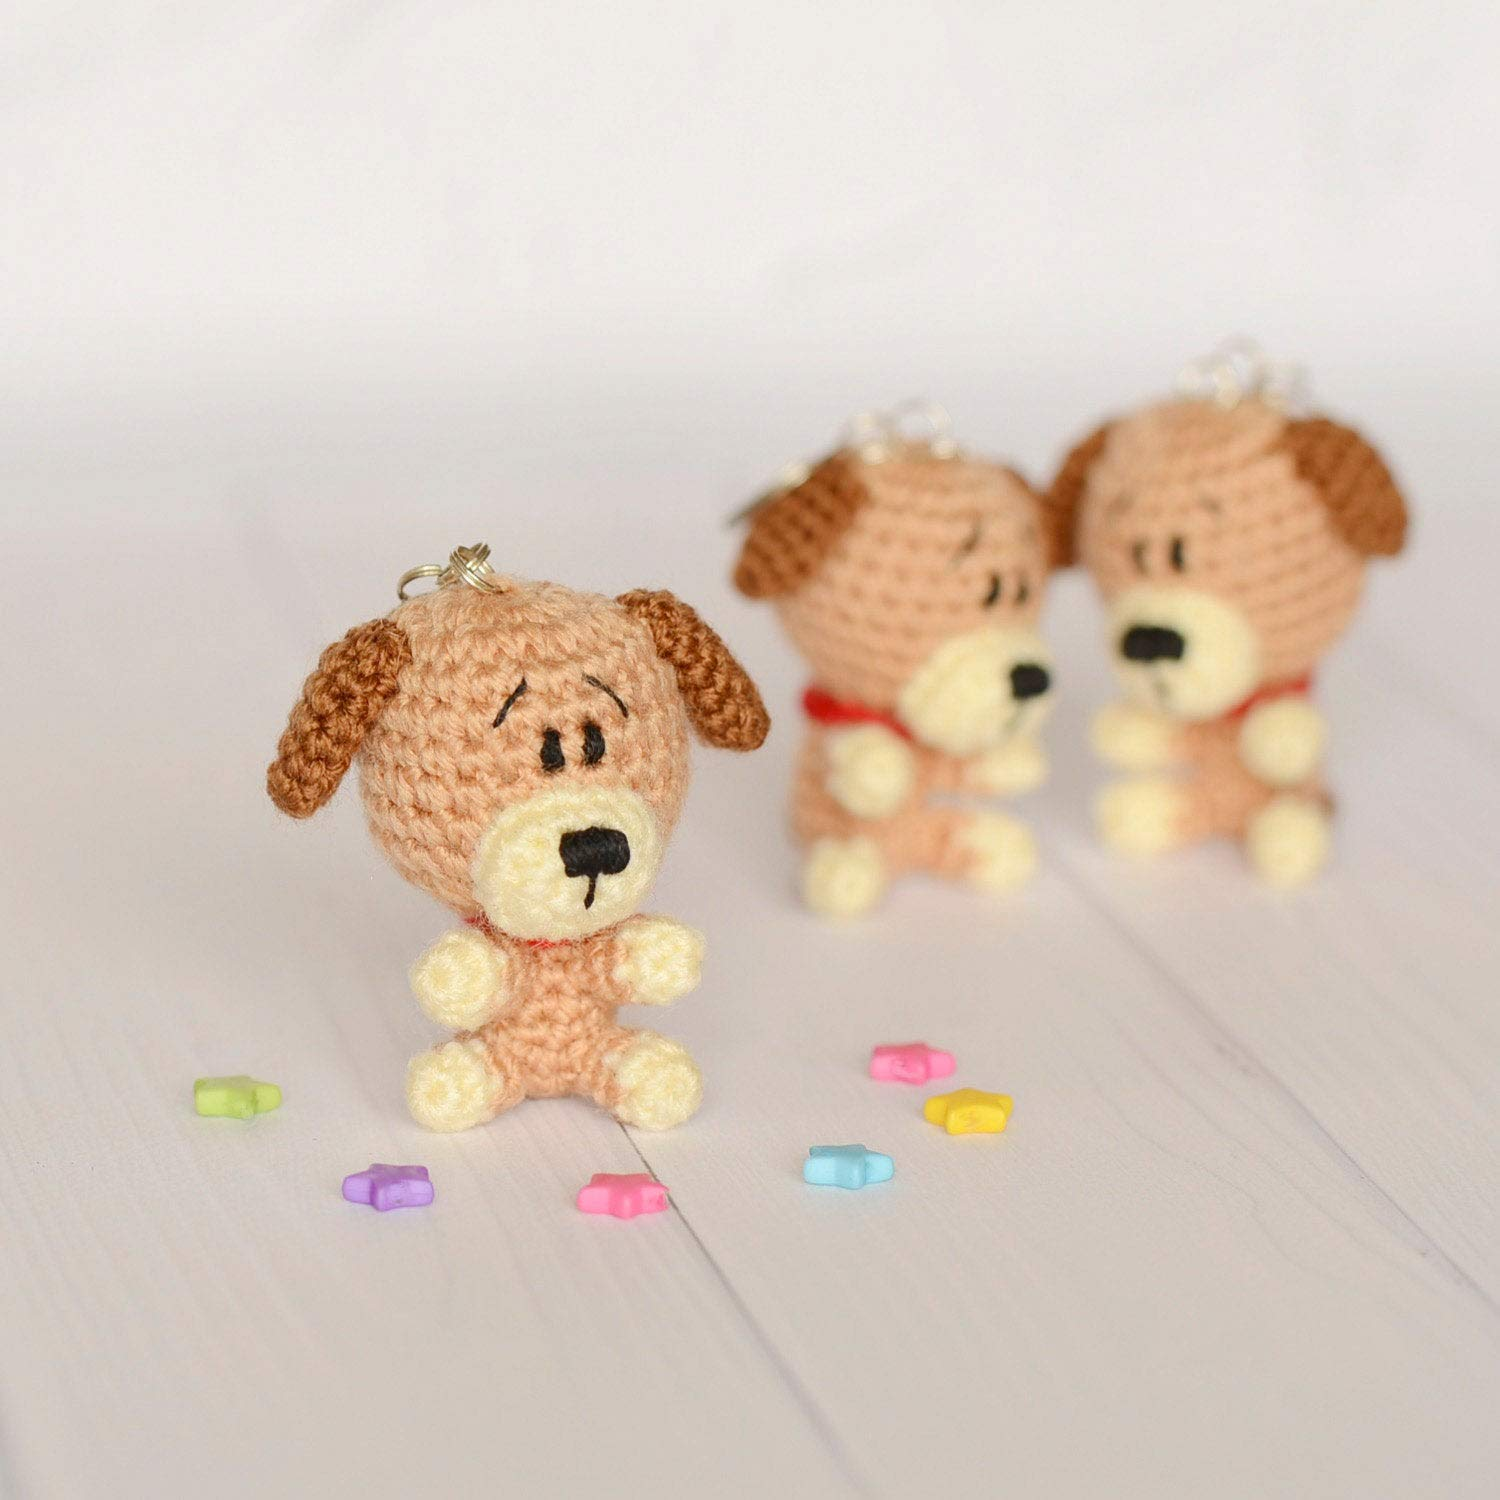 Amigurumi dog cupcake pattern - Amigurumi Today | 1500x1500